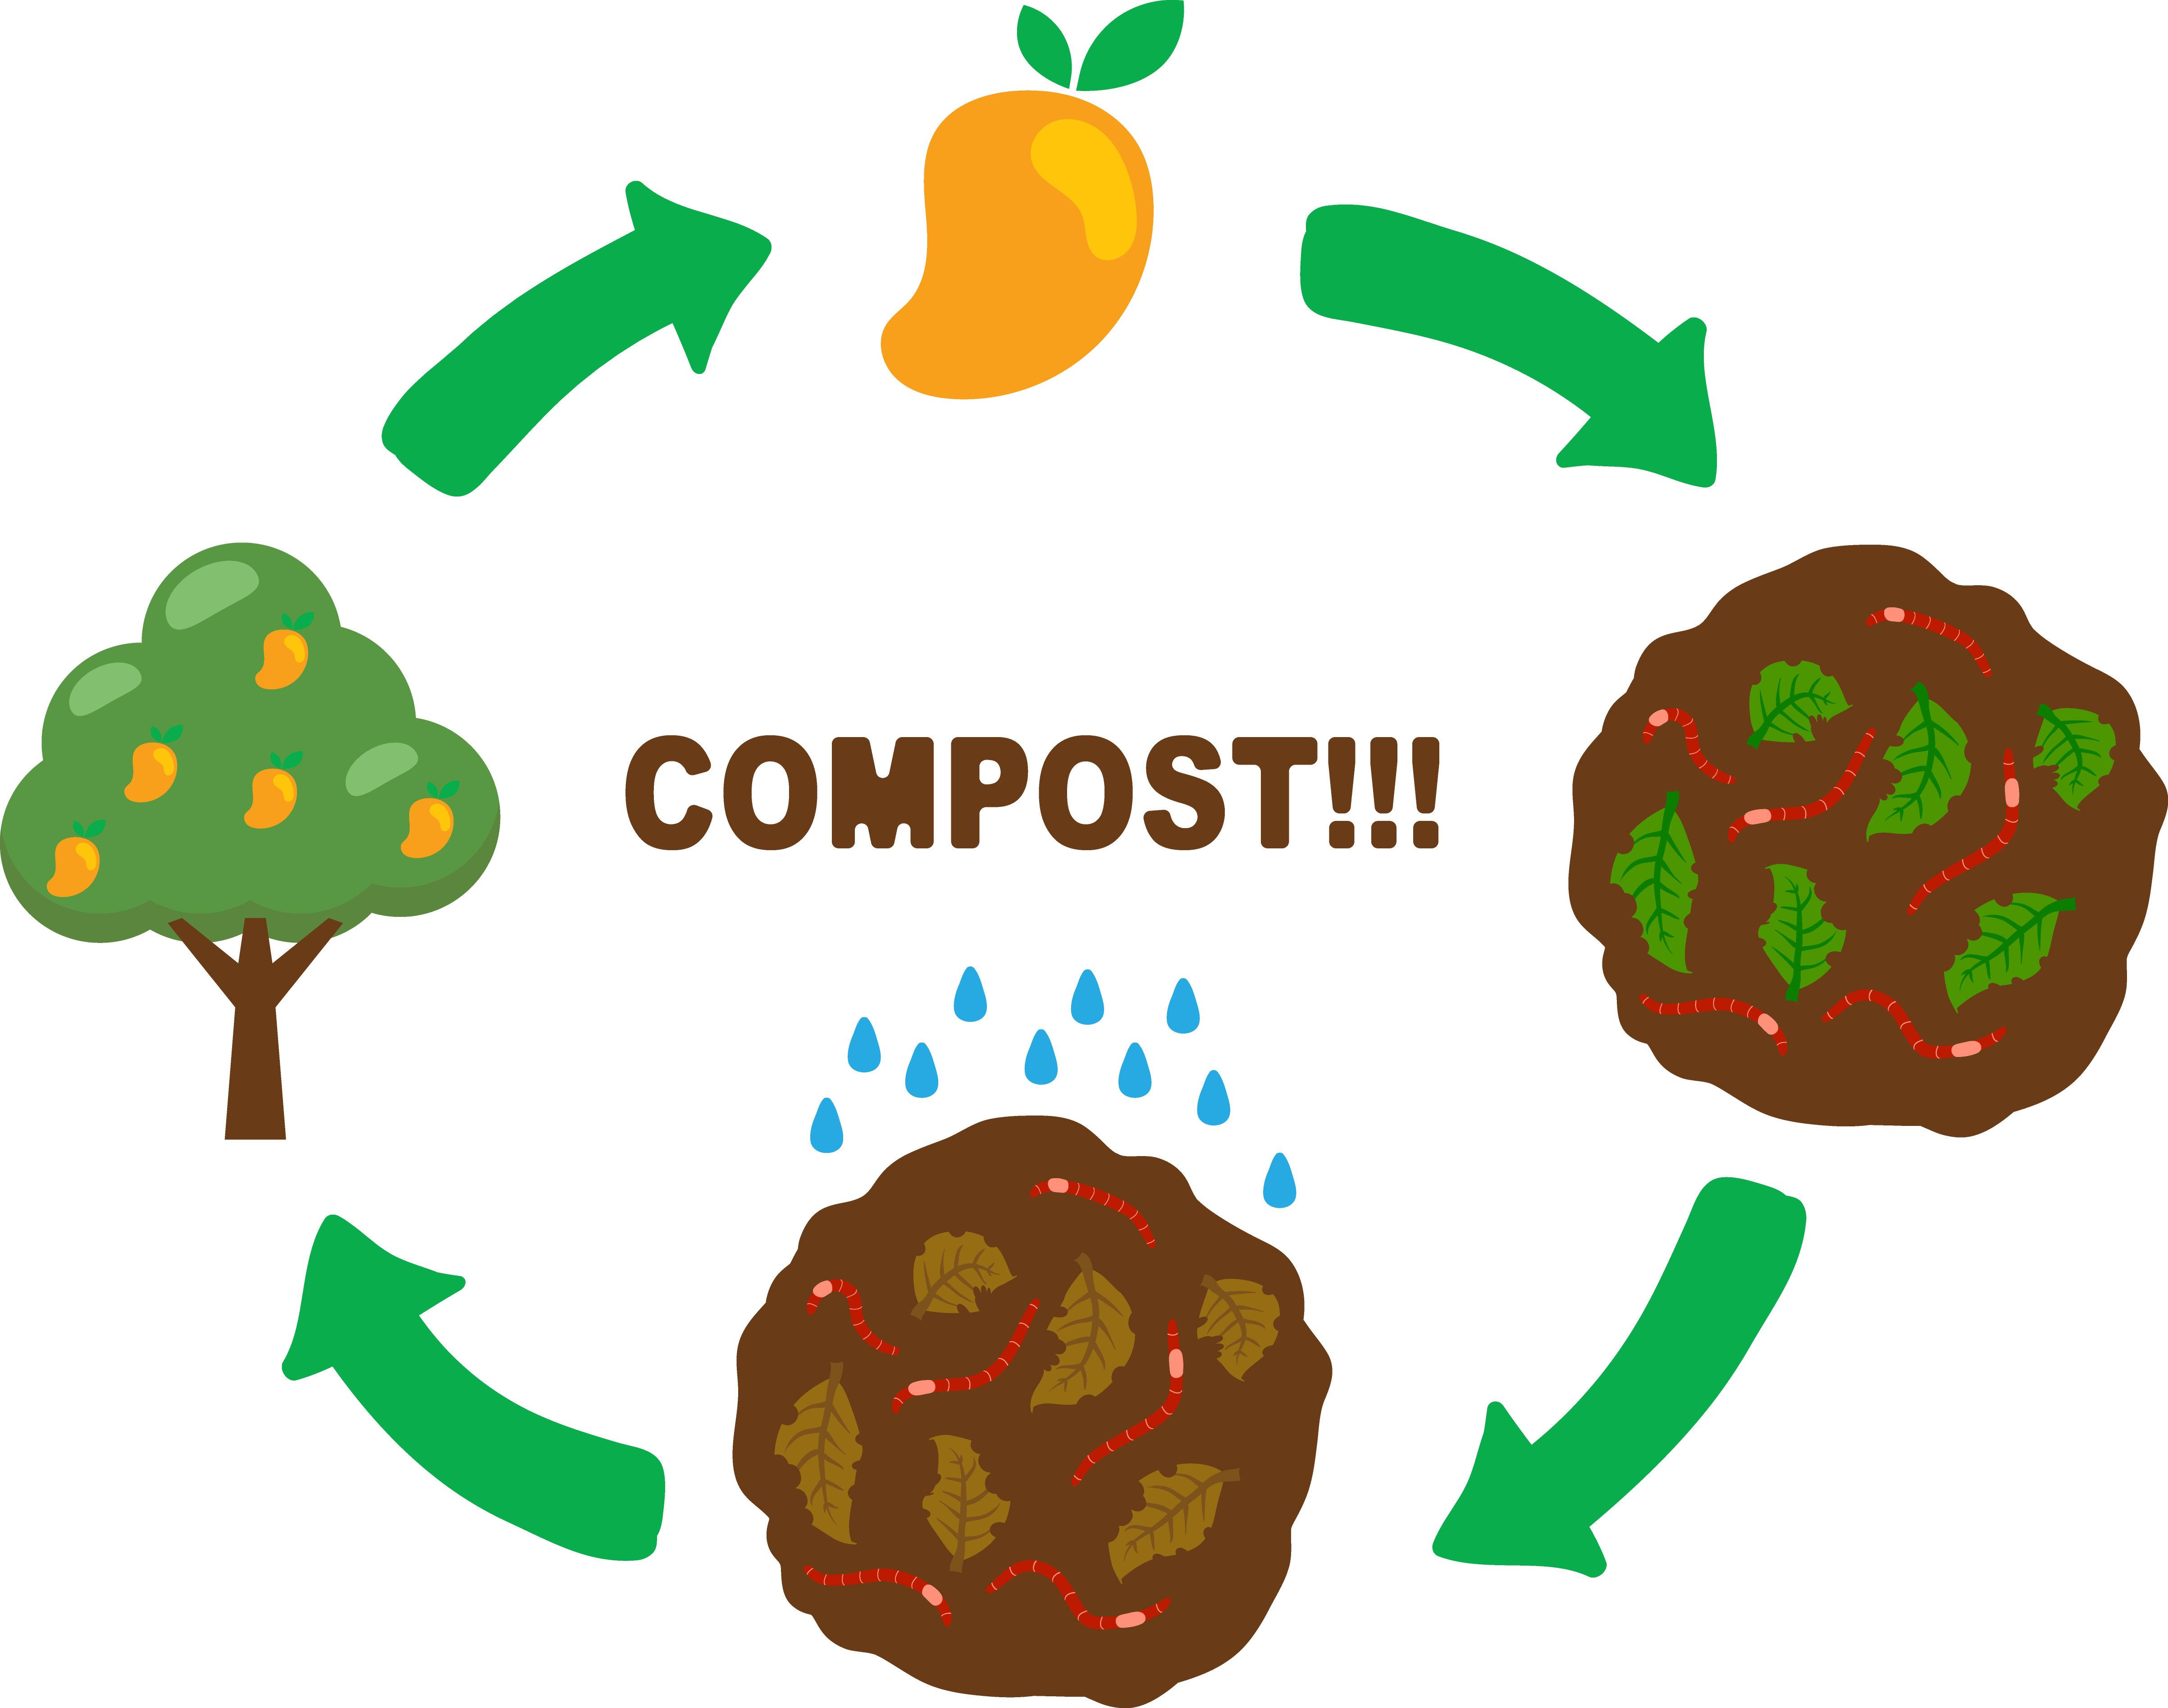 Green compost apple clipart transparent library Compost Soil Clip art - Grow mango trees 4811*3791 transprent Png ... transparent library